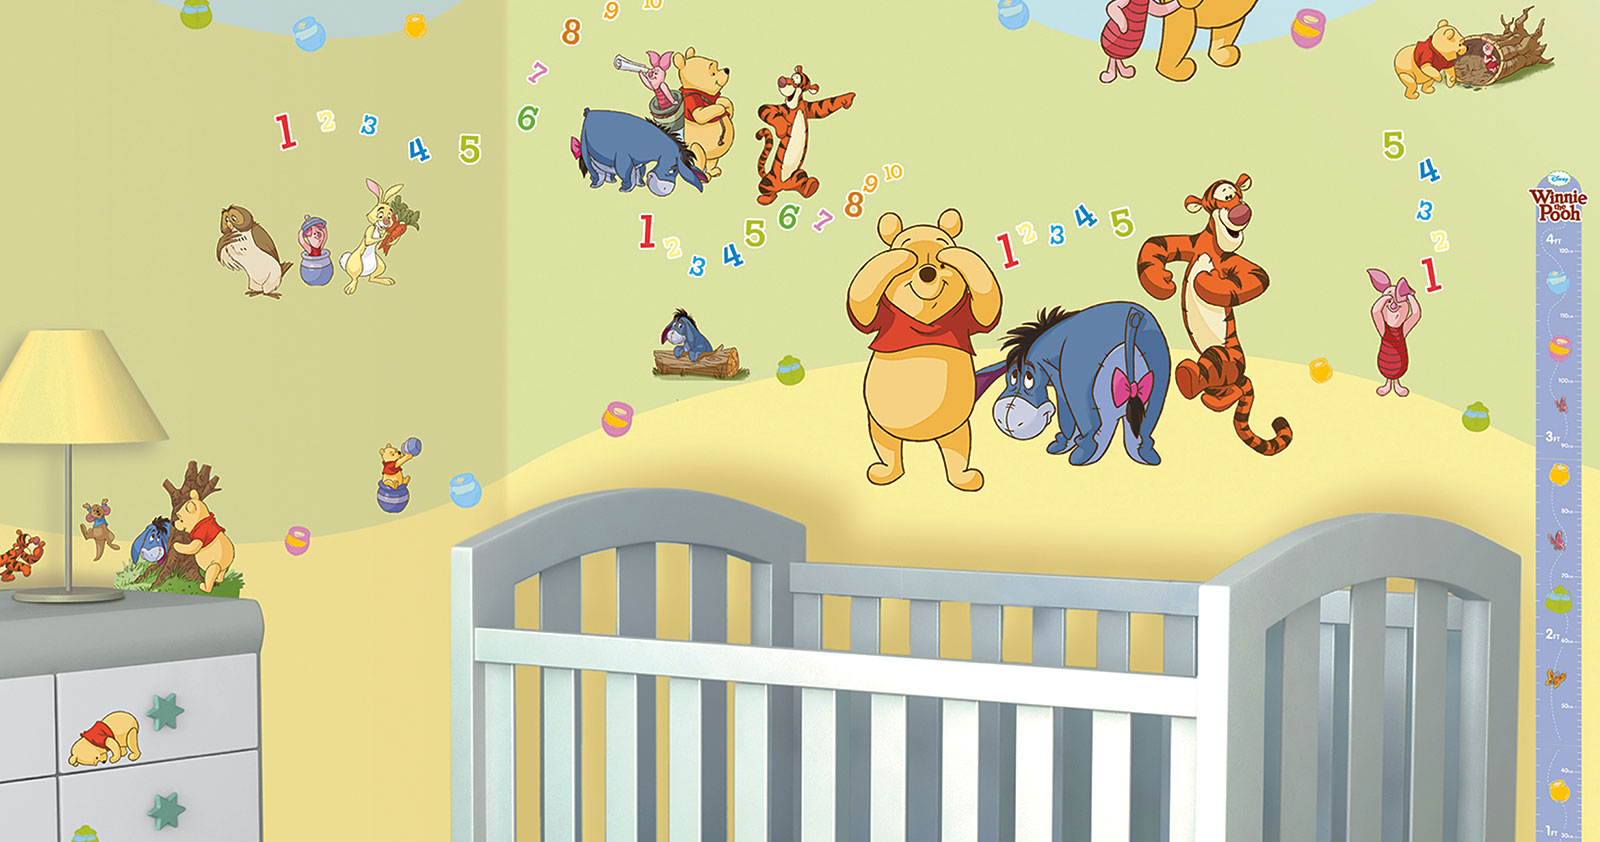 Kinderzimmer junge baby disney  Walltastic Wandsticker Kinderzimmer Disney Winnie the Pooh | www.4 ...